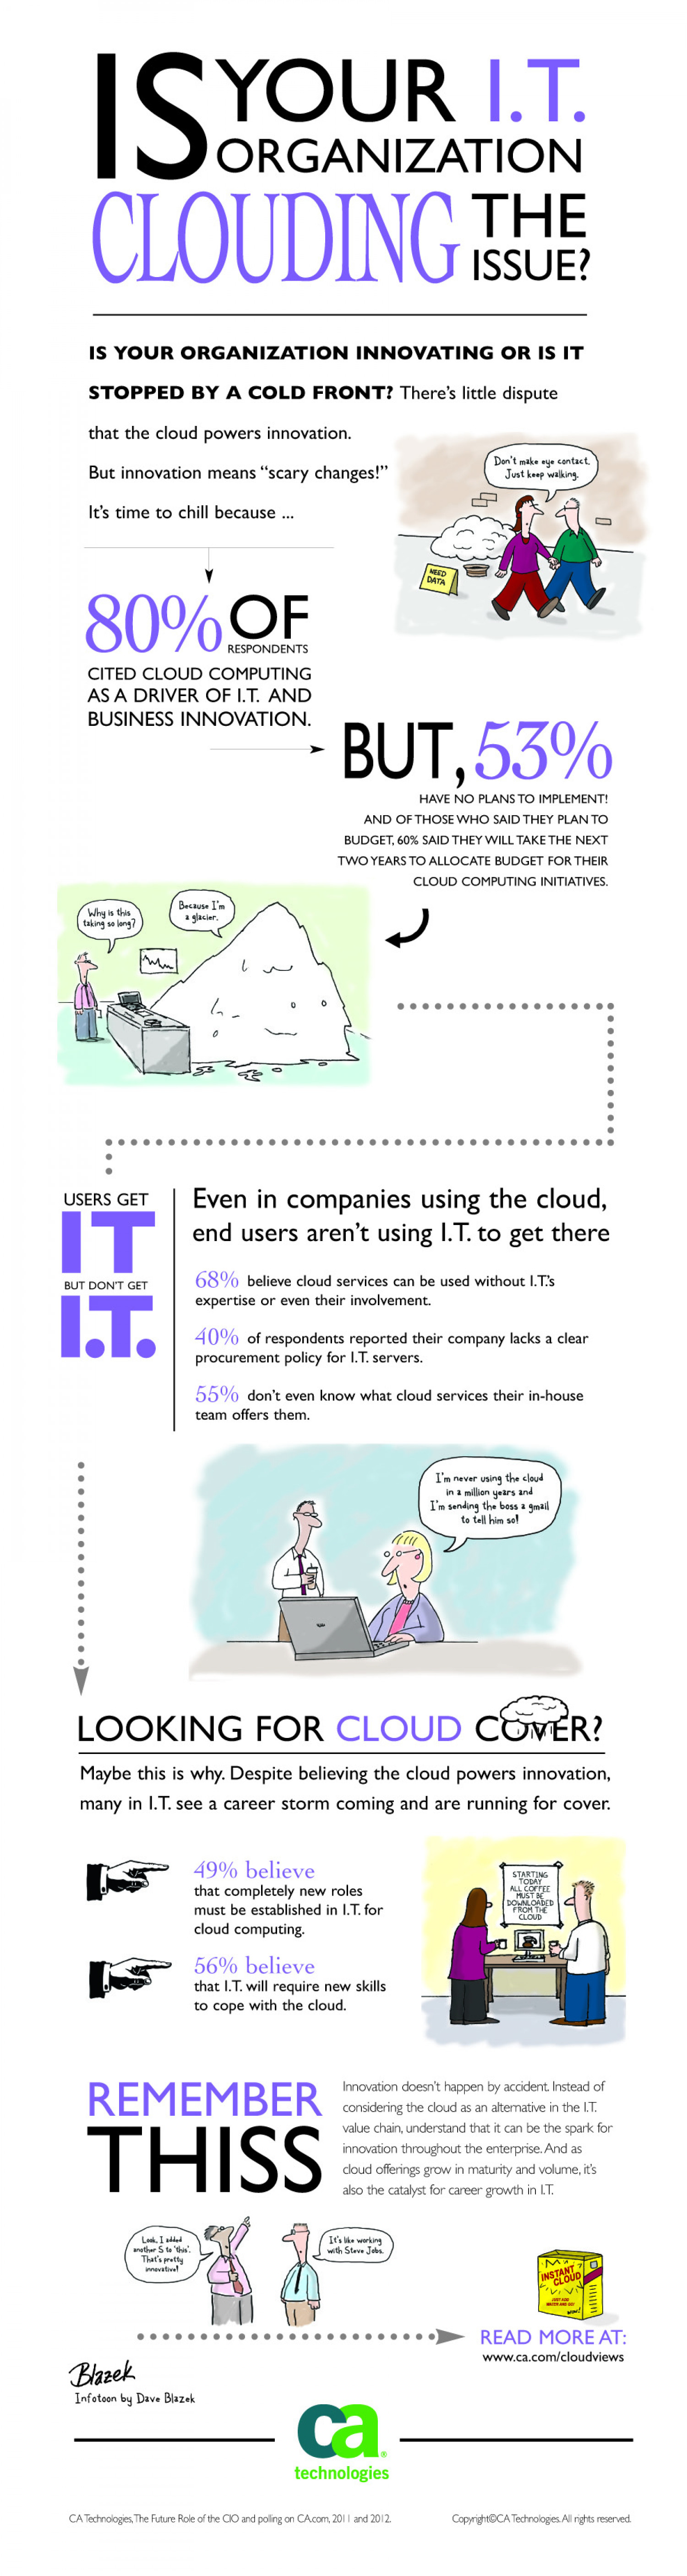 Is your I.T. organization clouding the issues? Infographic